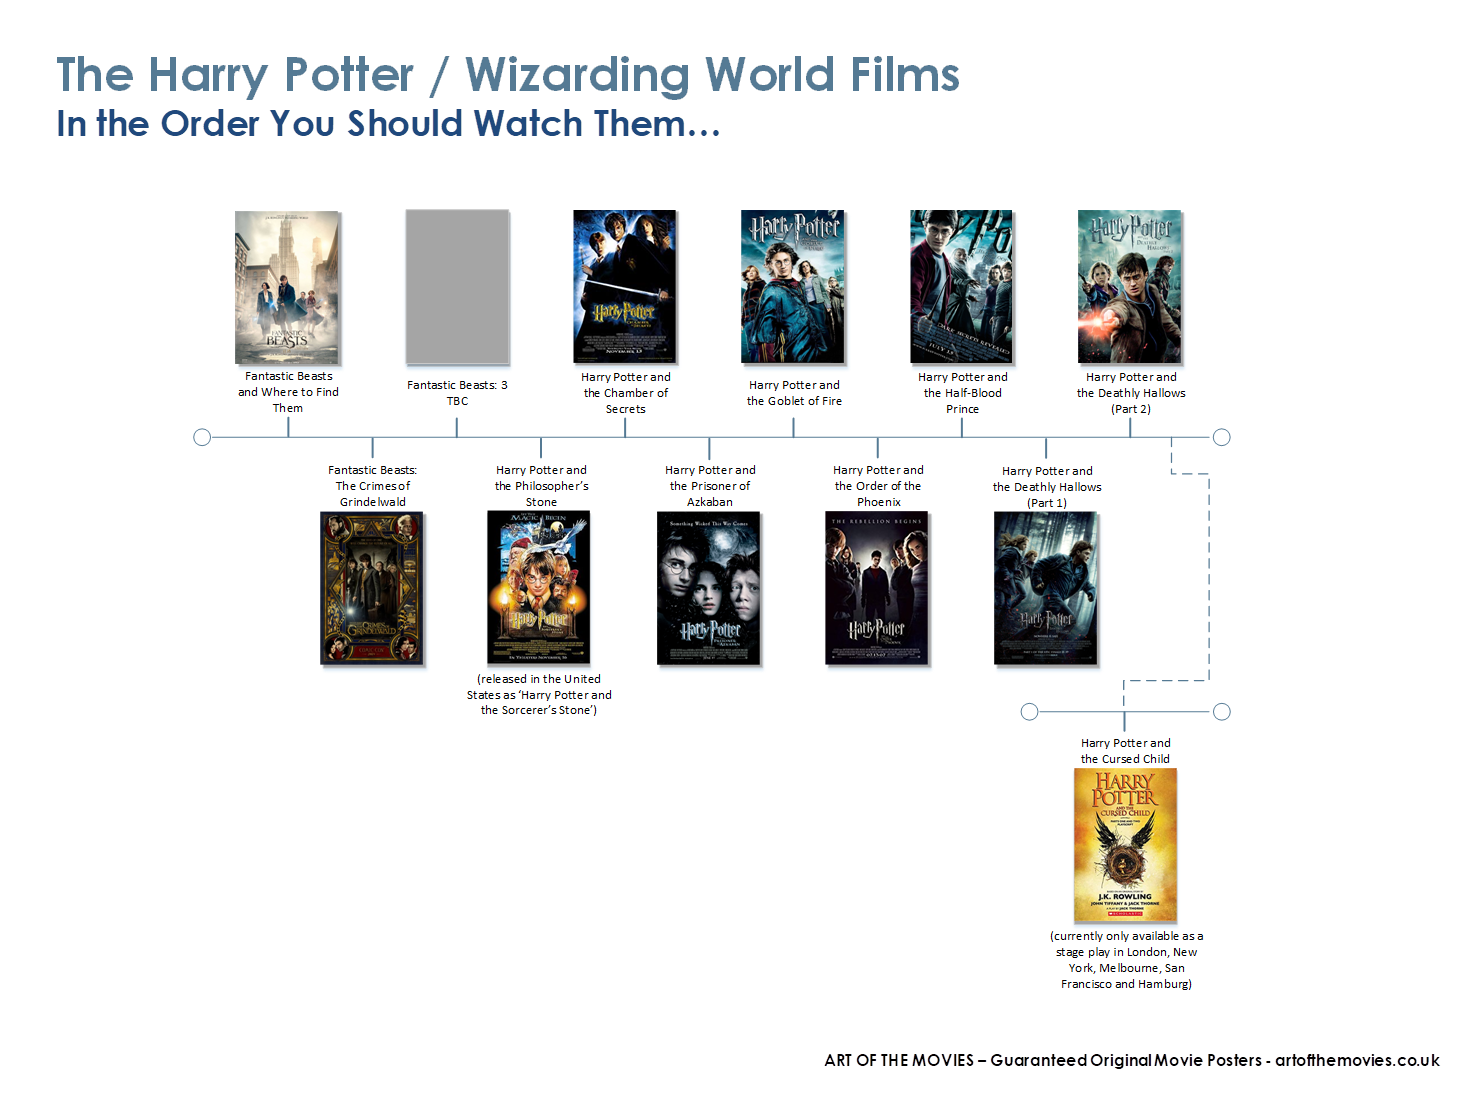 An Infographic showing the right order to watch the Harry Potter / Wizarding World films